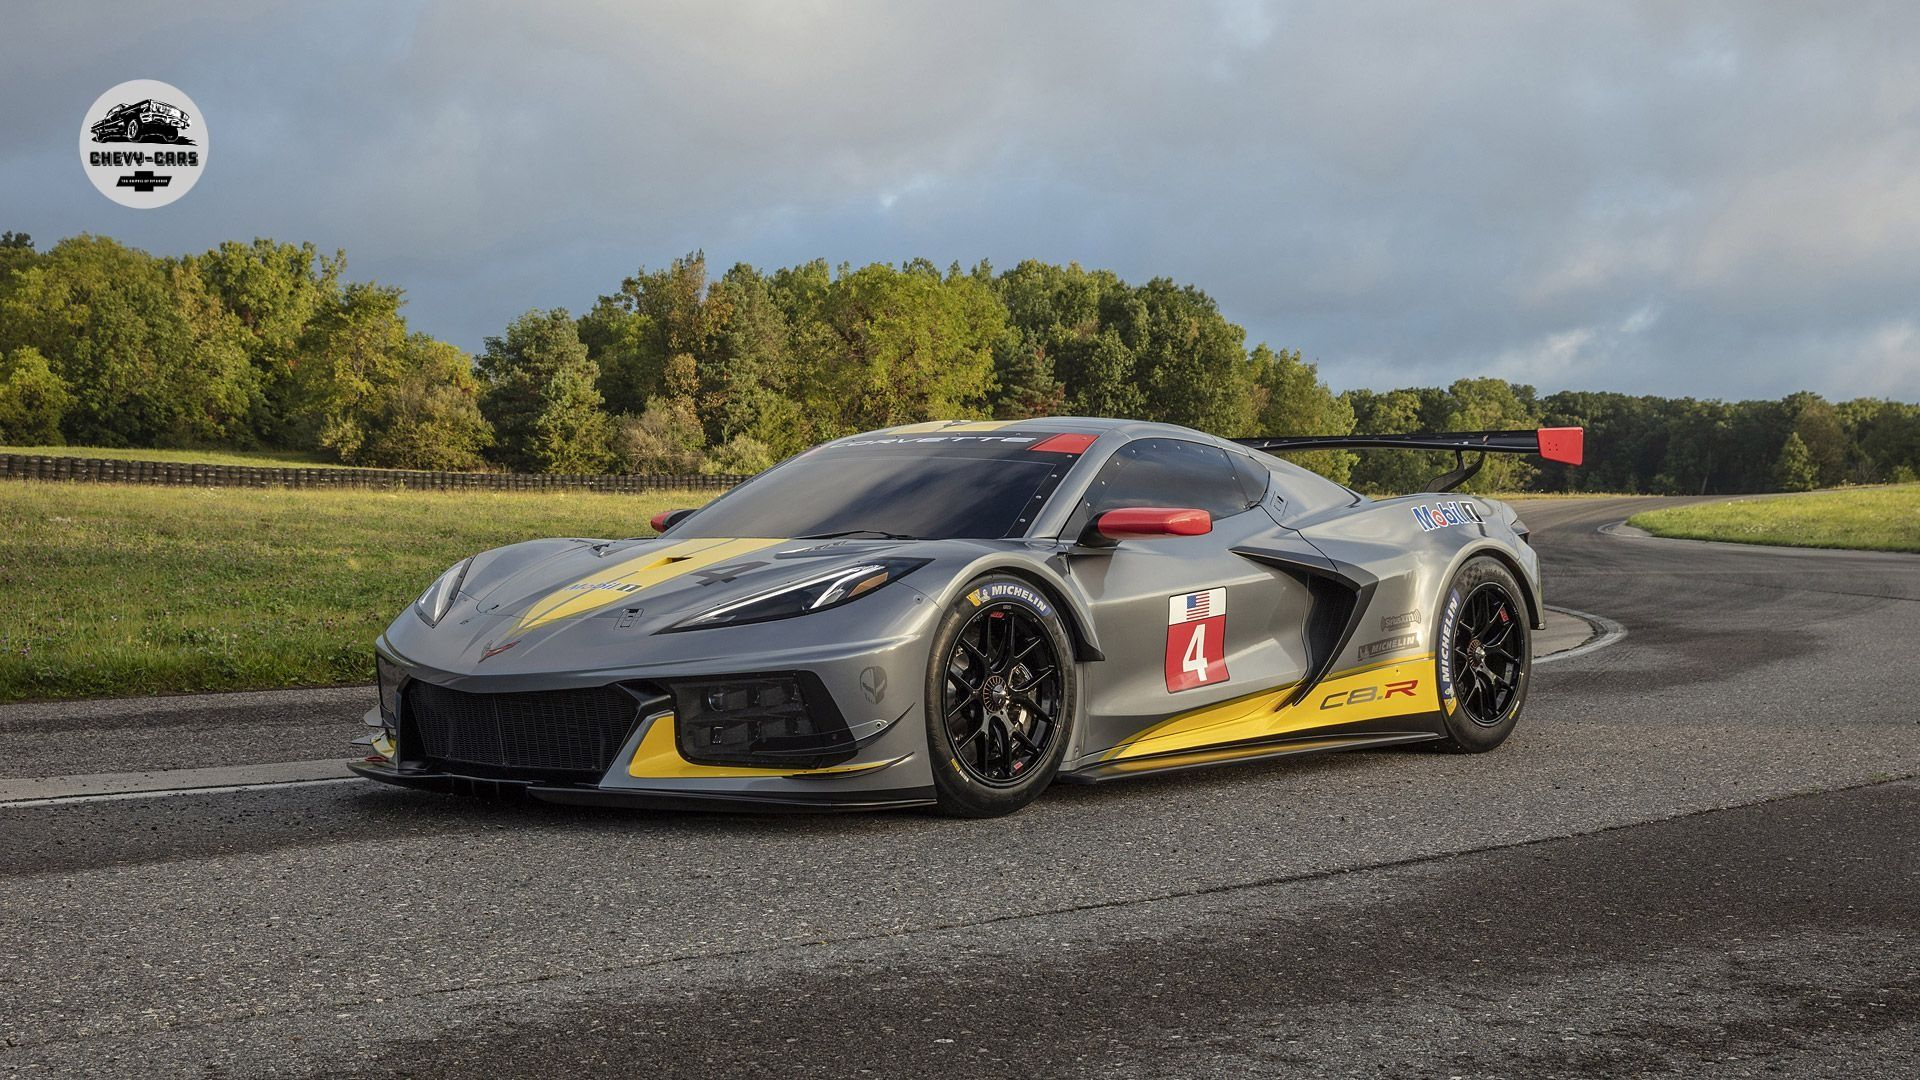 The Corvette C8 R Is Gonna Take Off At The Daytona Rolex 24 In Jan